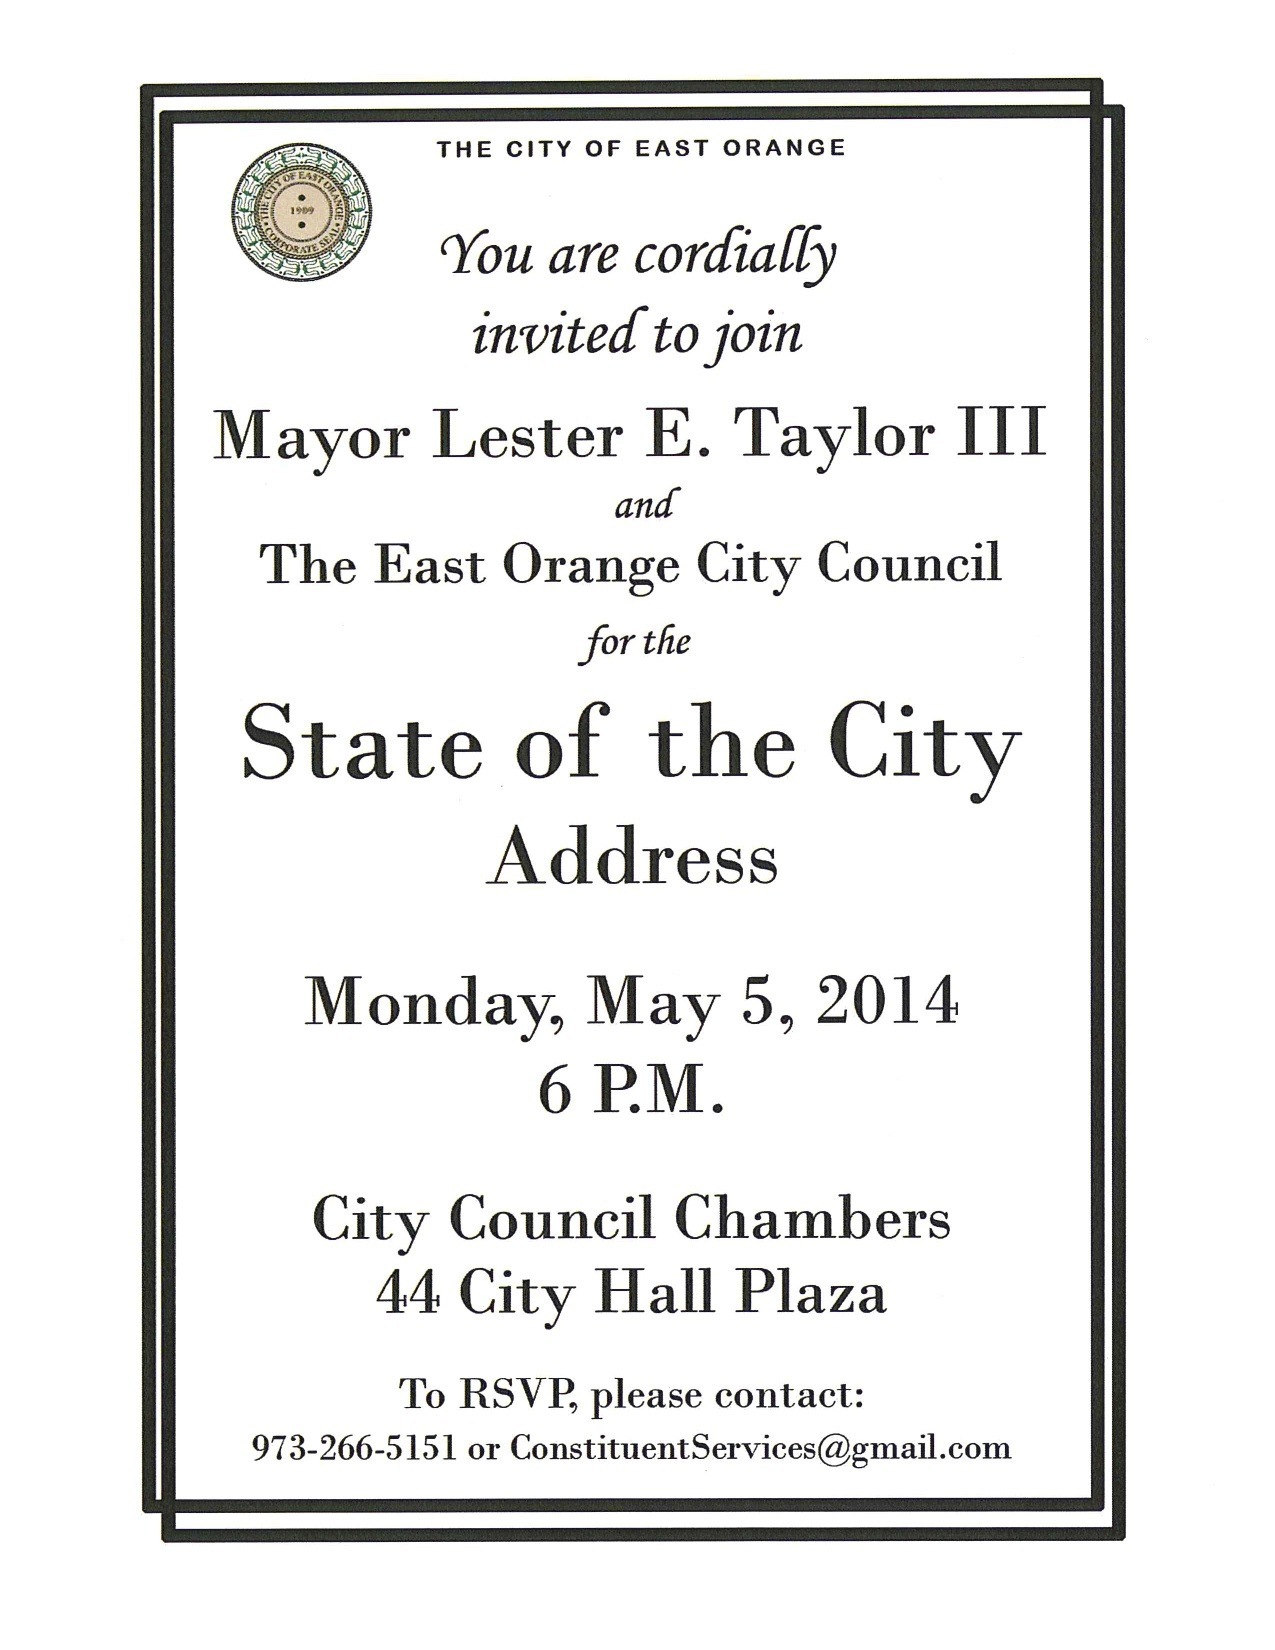 0817aca9e04dcfb95679_State_of_the_City_Address.jpg